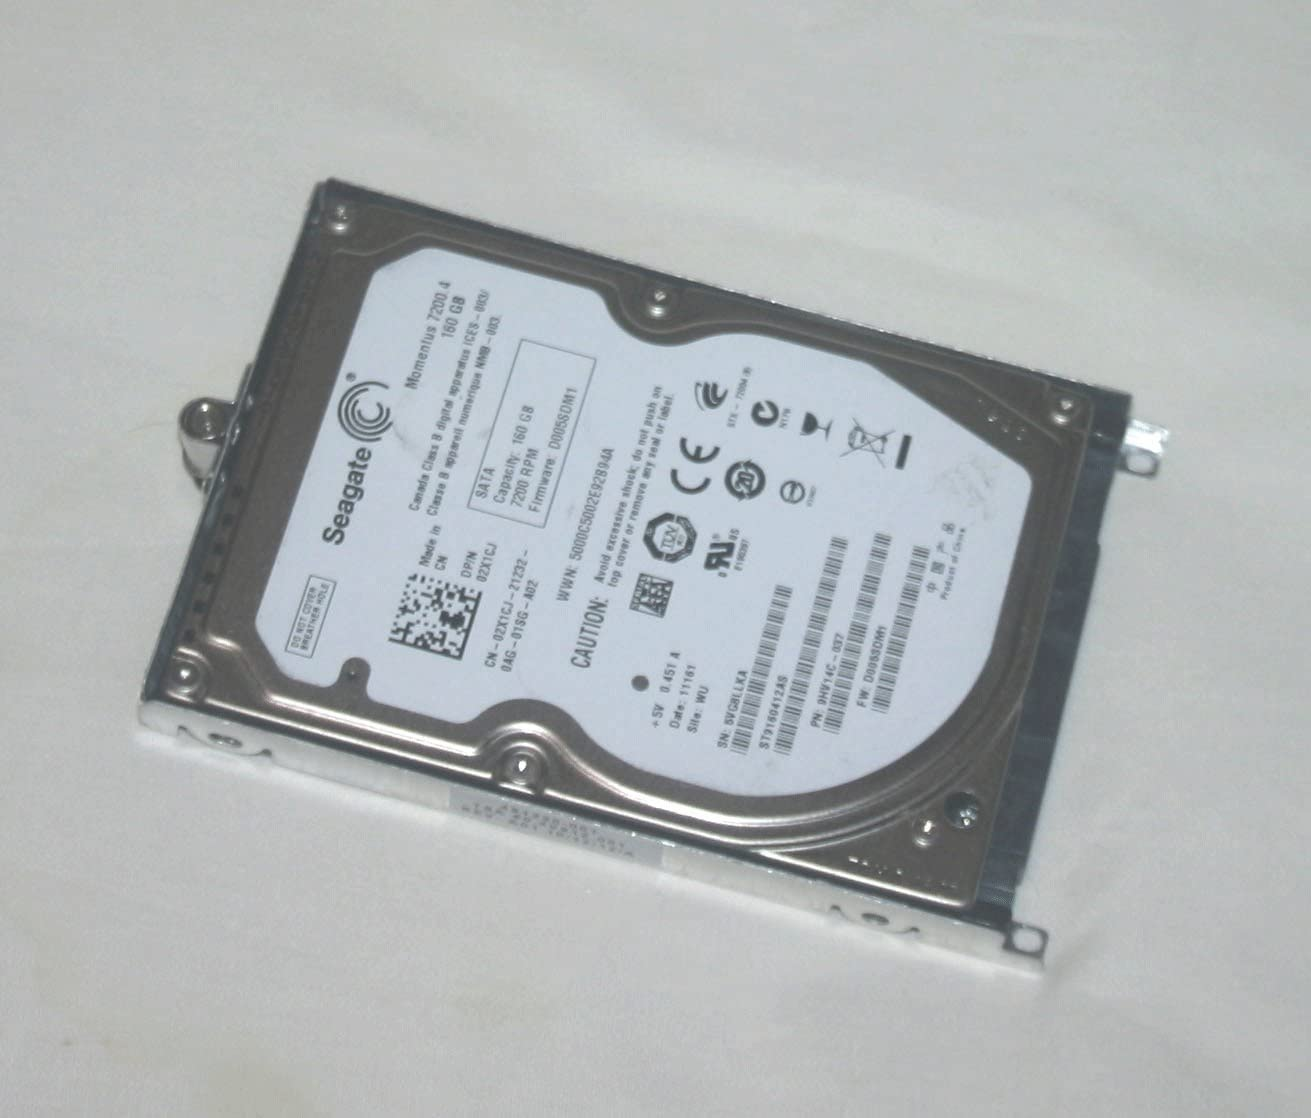 New 2TB Sata Hard Drive for HP ProBook 4421s 4515s 4710s 4720s 6550b